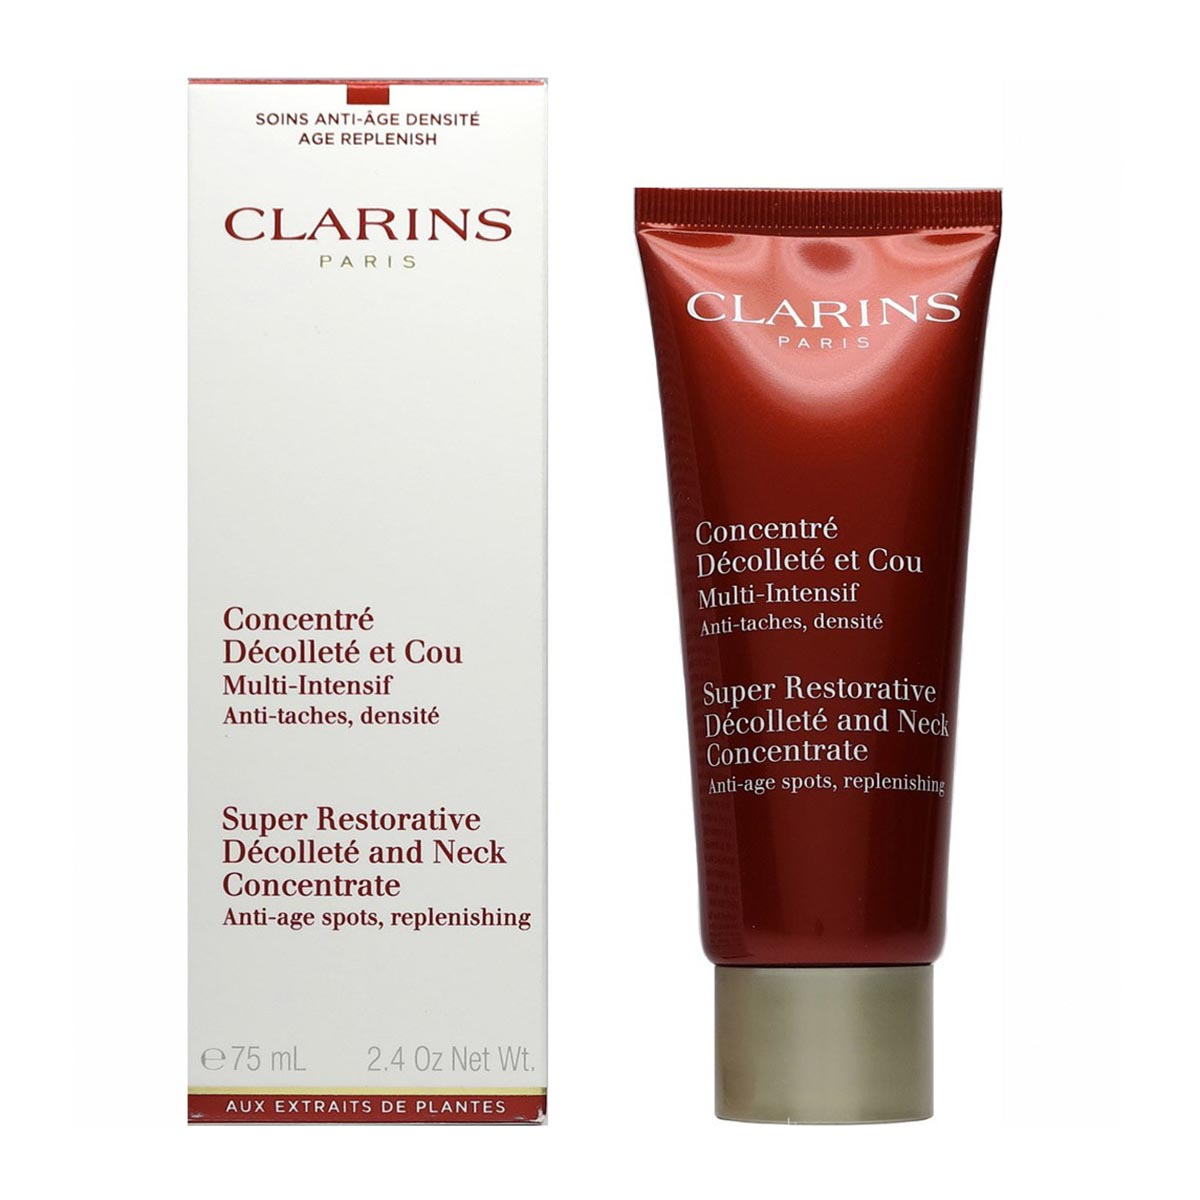 Clarins concentre decollete et cou multi intensif anti taches 75ml